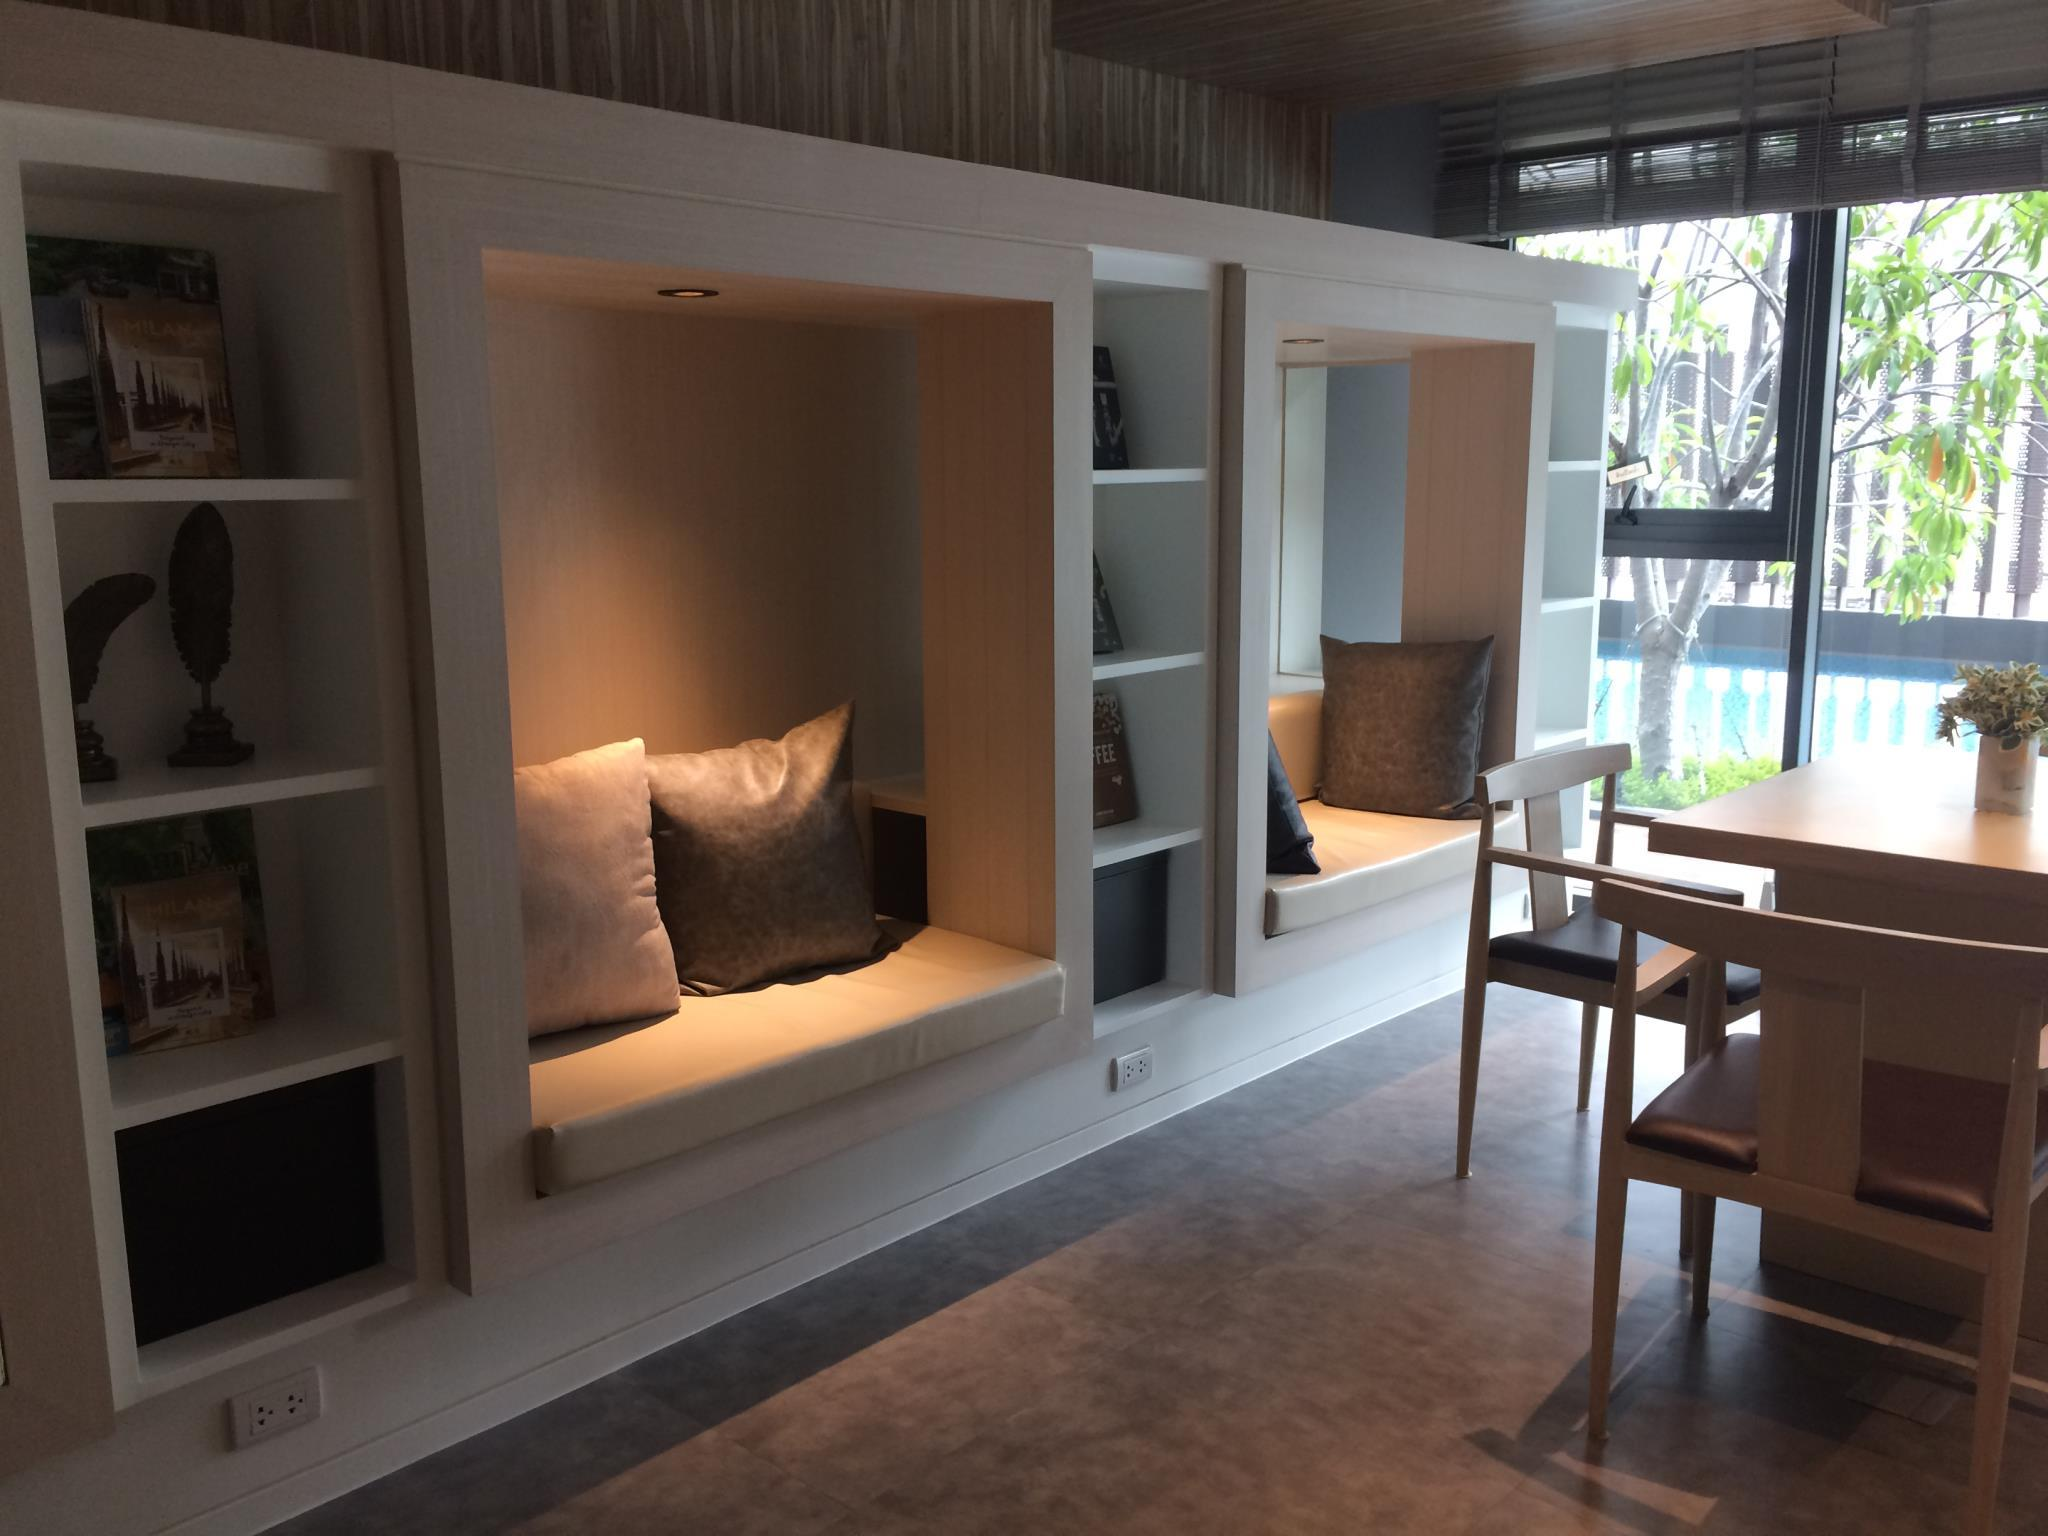 Hotels Review: condo the stage taopoon interchange – Pictures, Rates & Deals